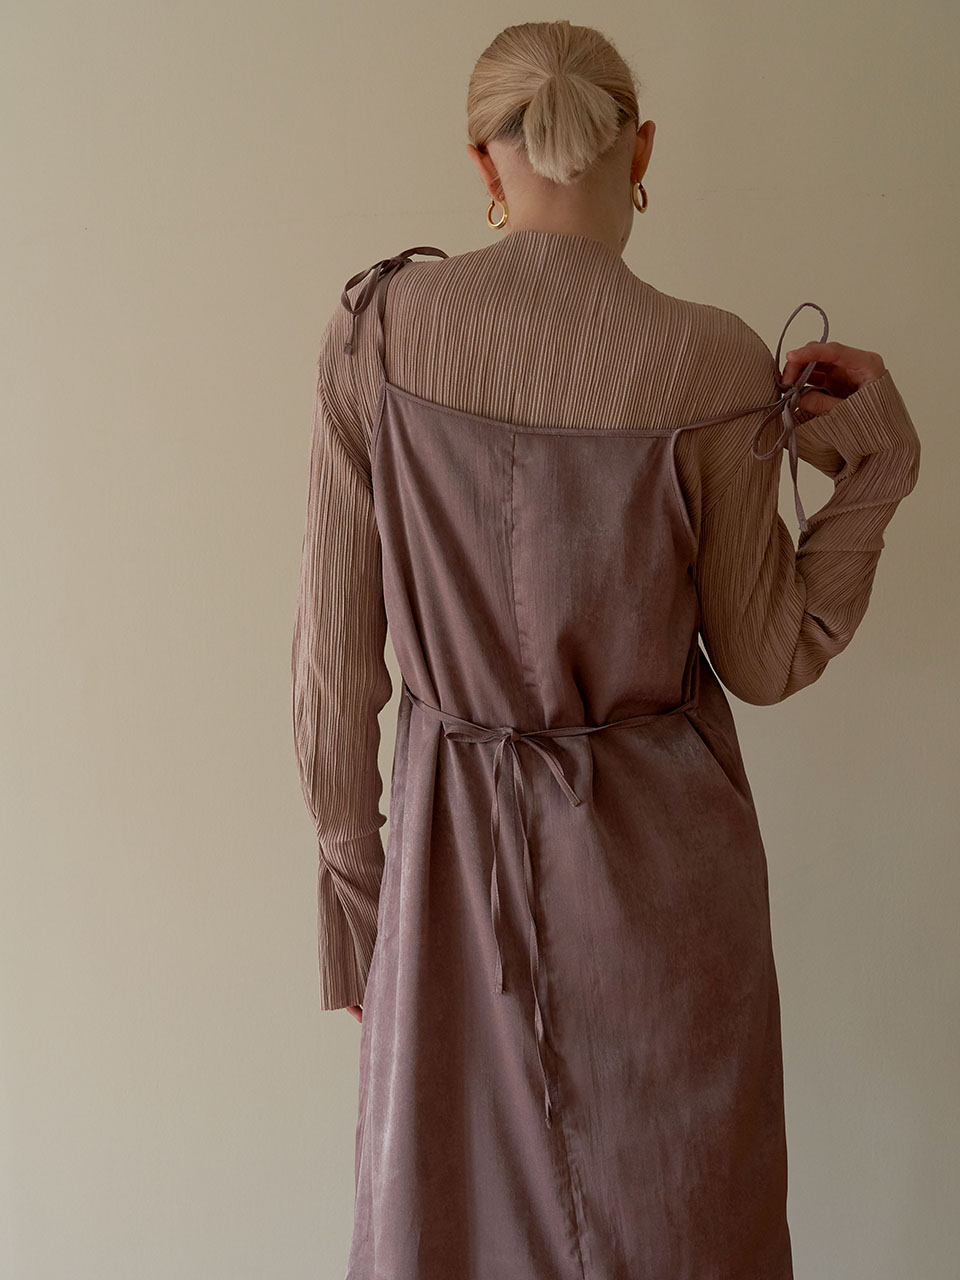 Autumn tint dress - Beige